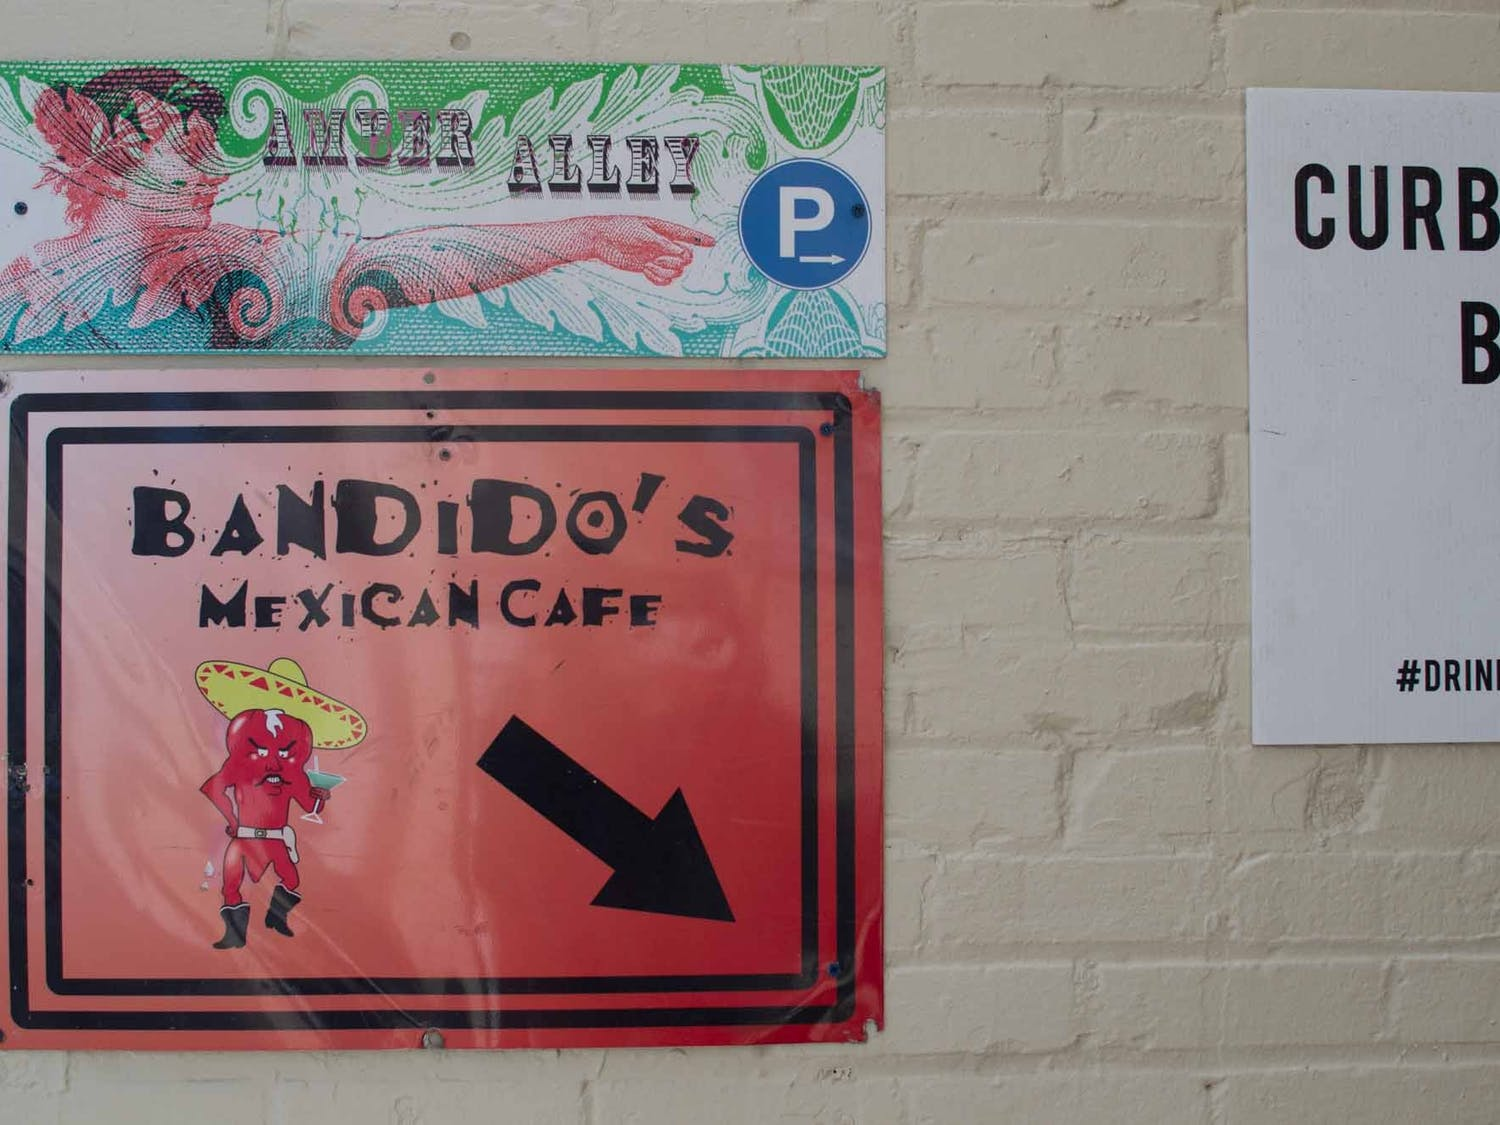 A sign on Franklin Street directs pedestrians down to Bandidos Mexican Cafe on Feb. 4, 2021. After struggling with financial stress created by the COVID-19 pandemic, Chapel Hill restaurant Bandido's started a GoFundMe campaign last month to supplement its lull in foot traffic.